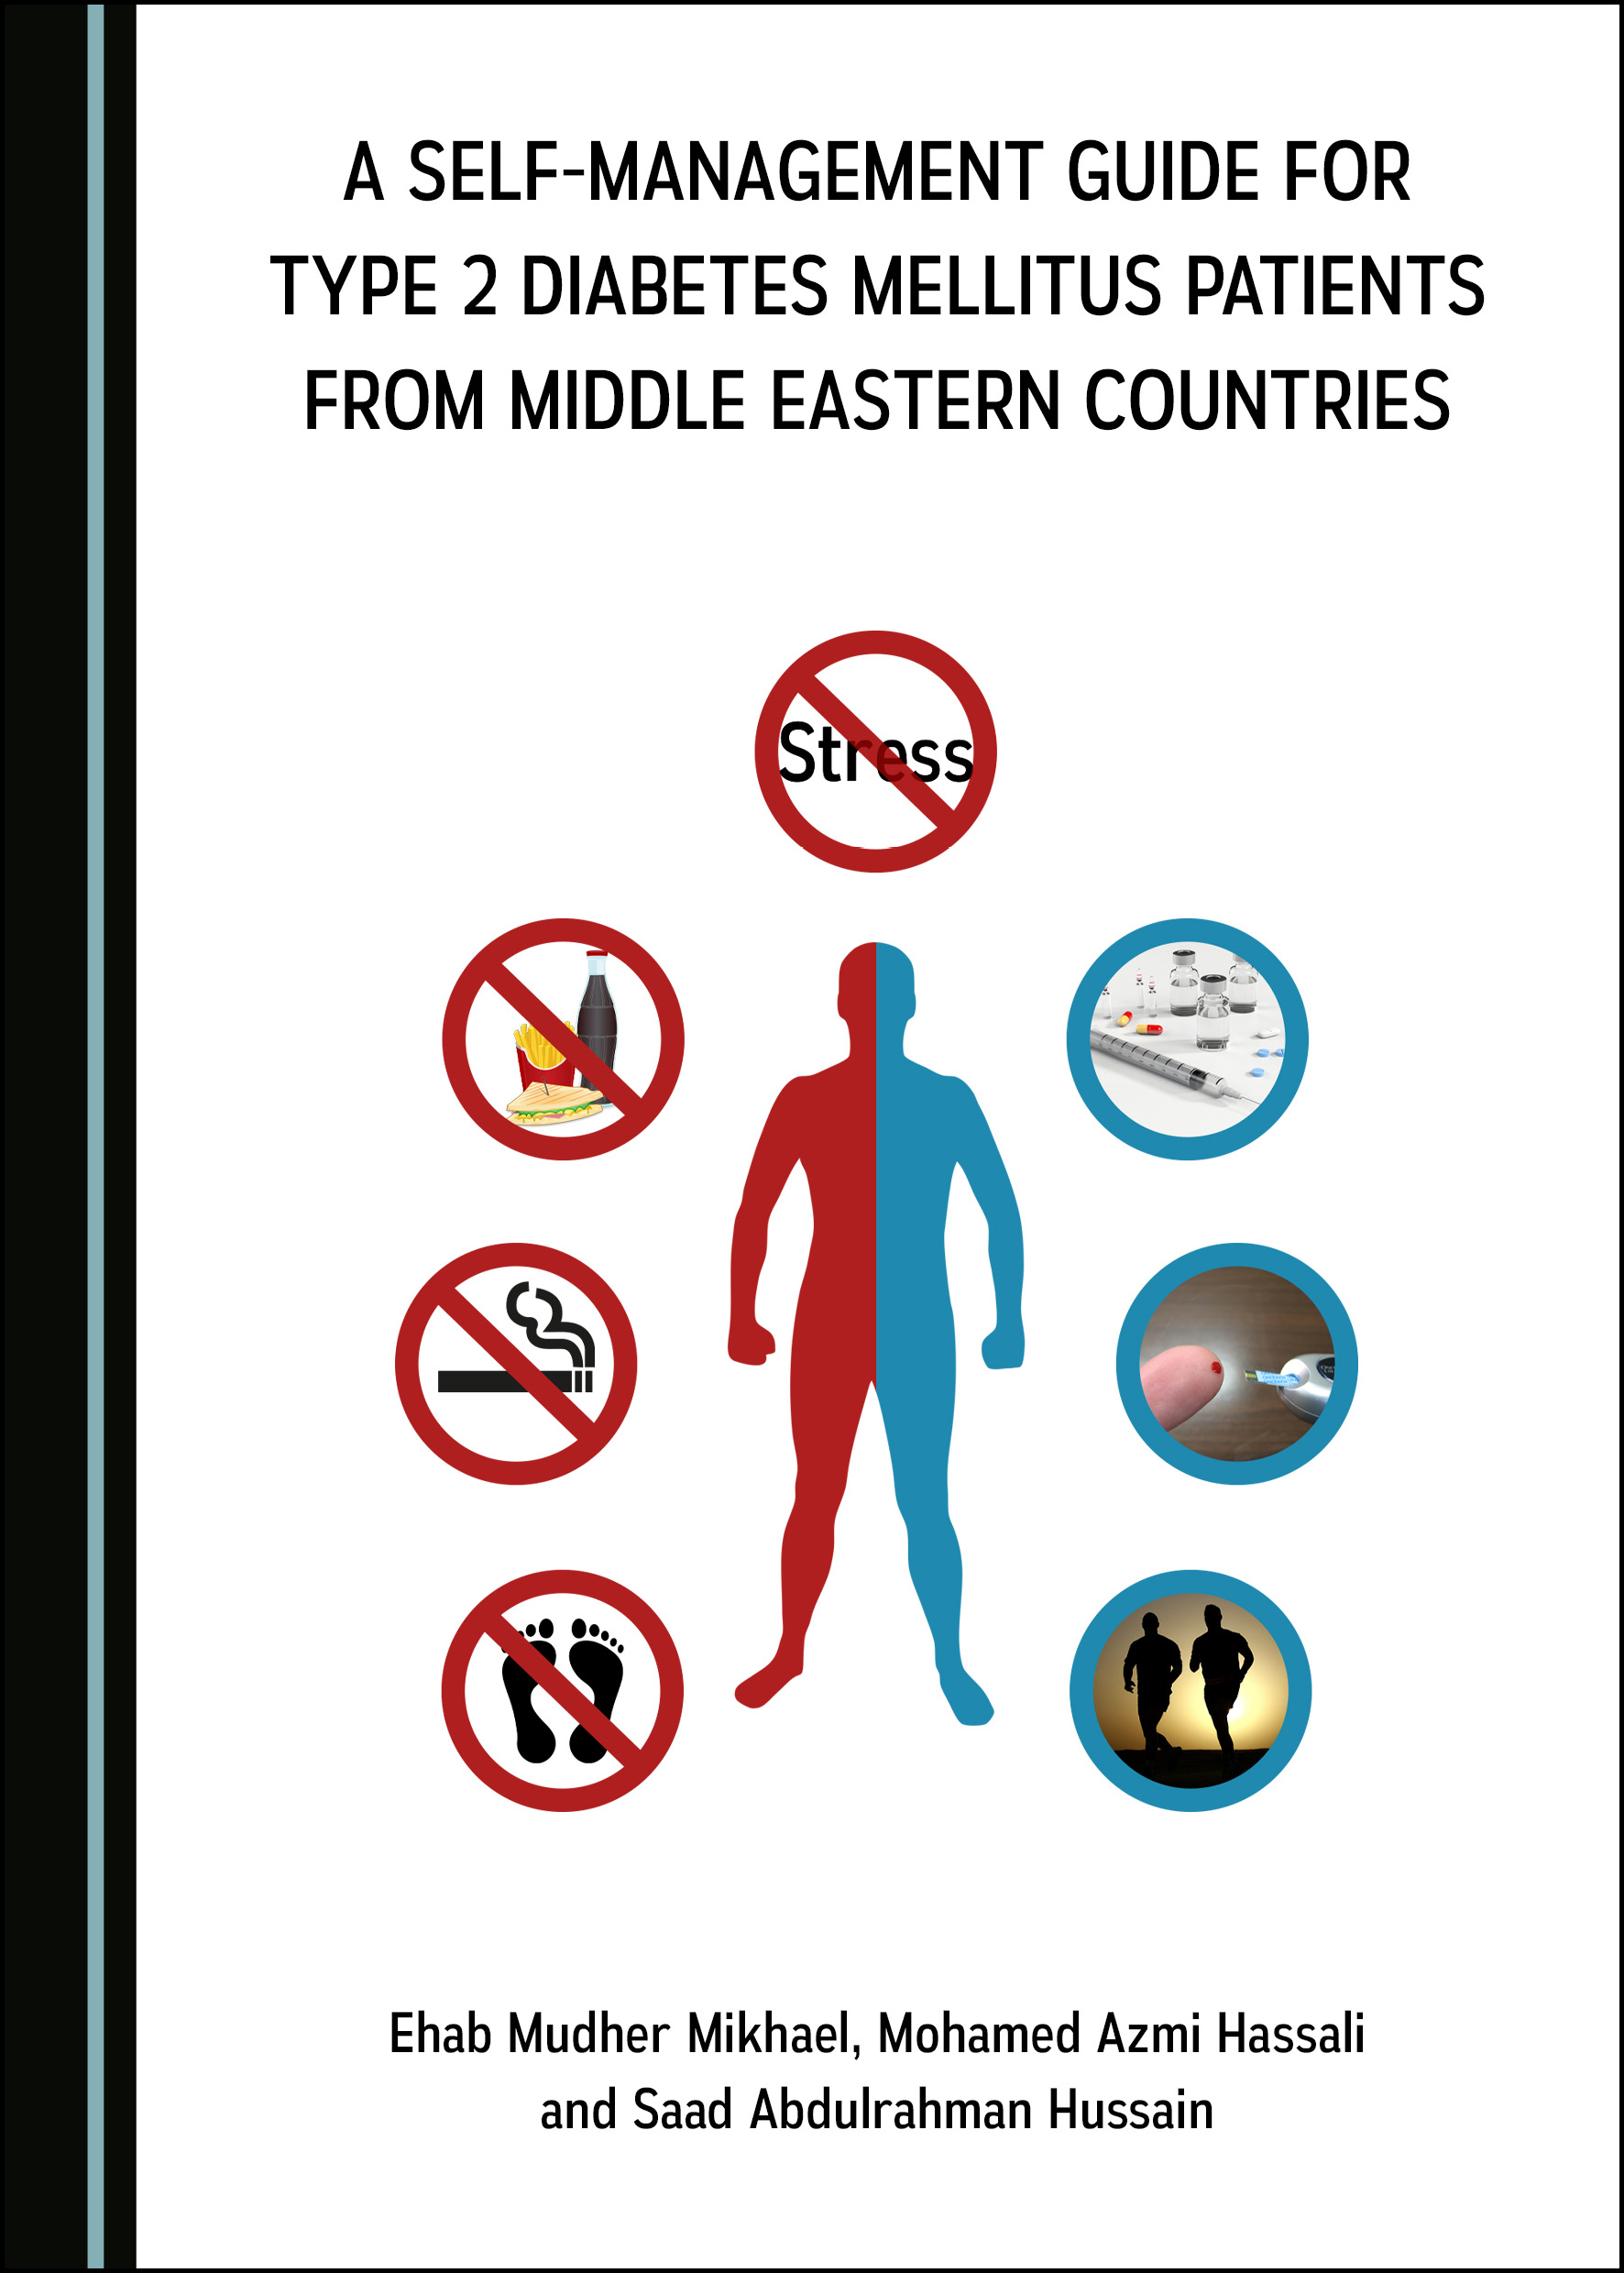 A Self-management Guide for Type 2 Diabetes Mellitus Patients from Middle Eastern Countries